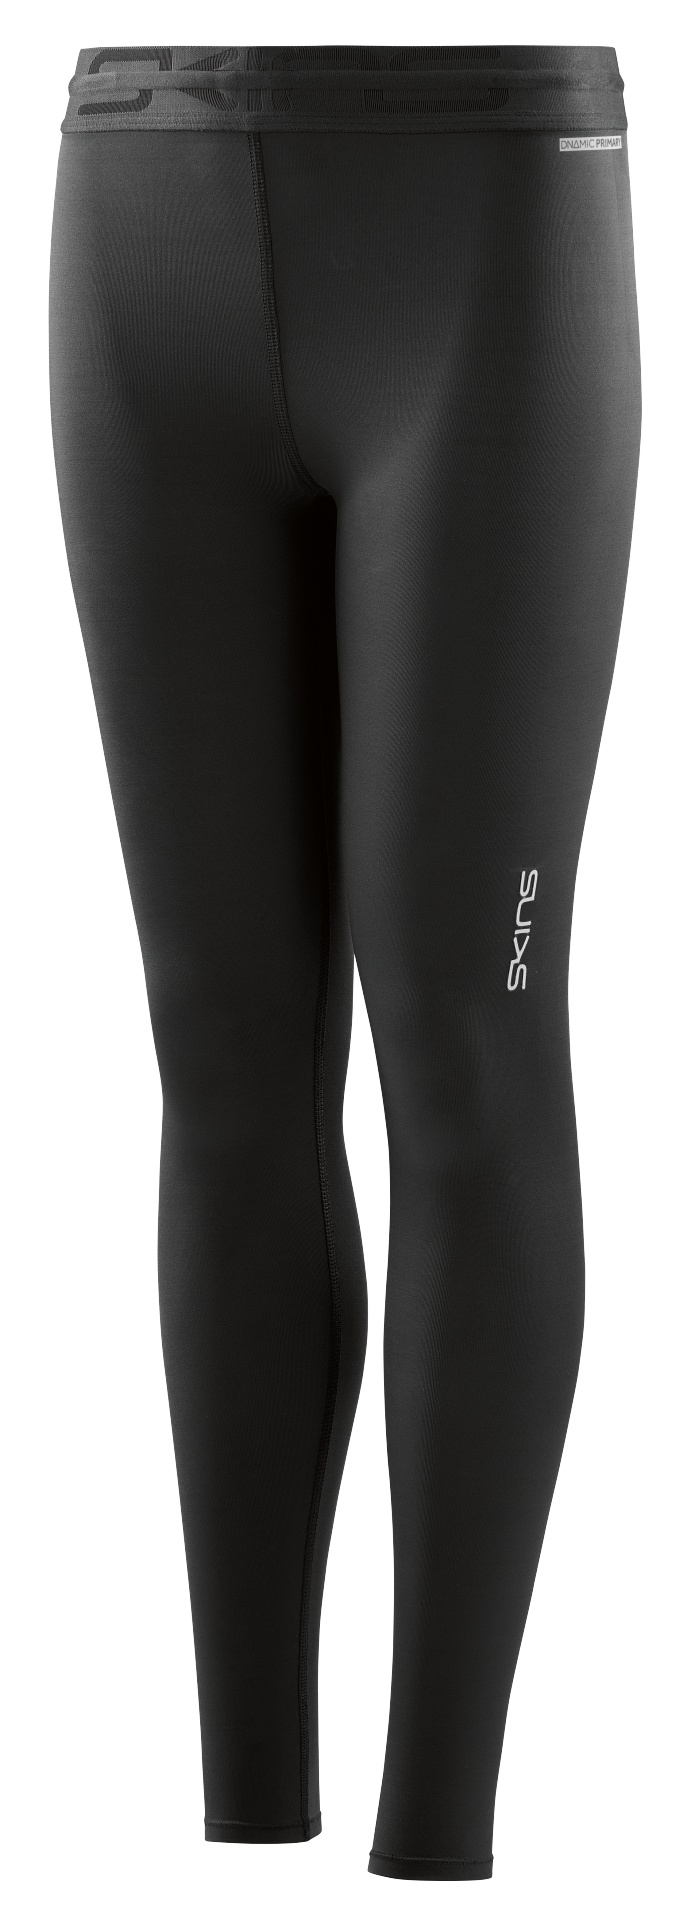 Primary Youth Long Tights Black